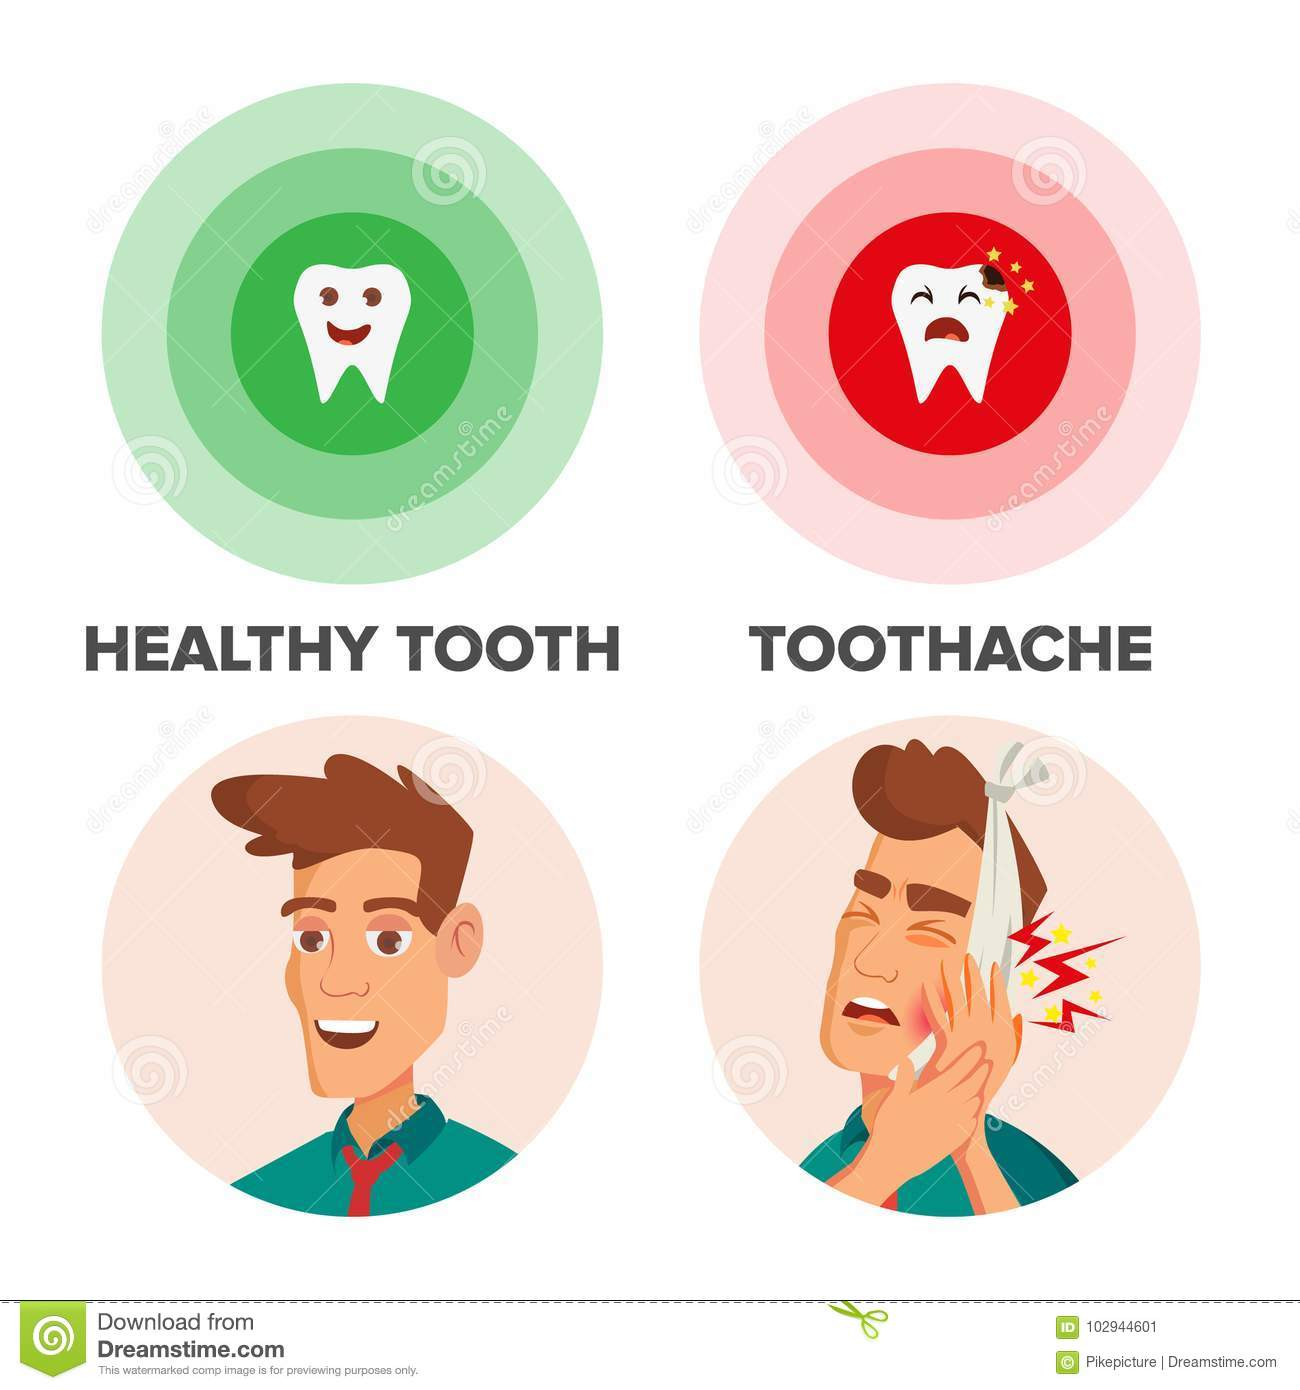 Healthy Tooth And Toothache Vector Man With Toothache And Bandage Concept For Dentist Diseases Tooth Day Cartoondealer Com 102944601